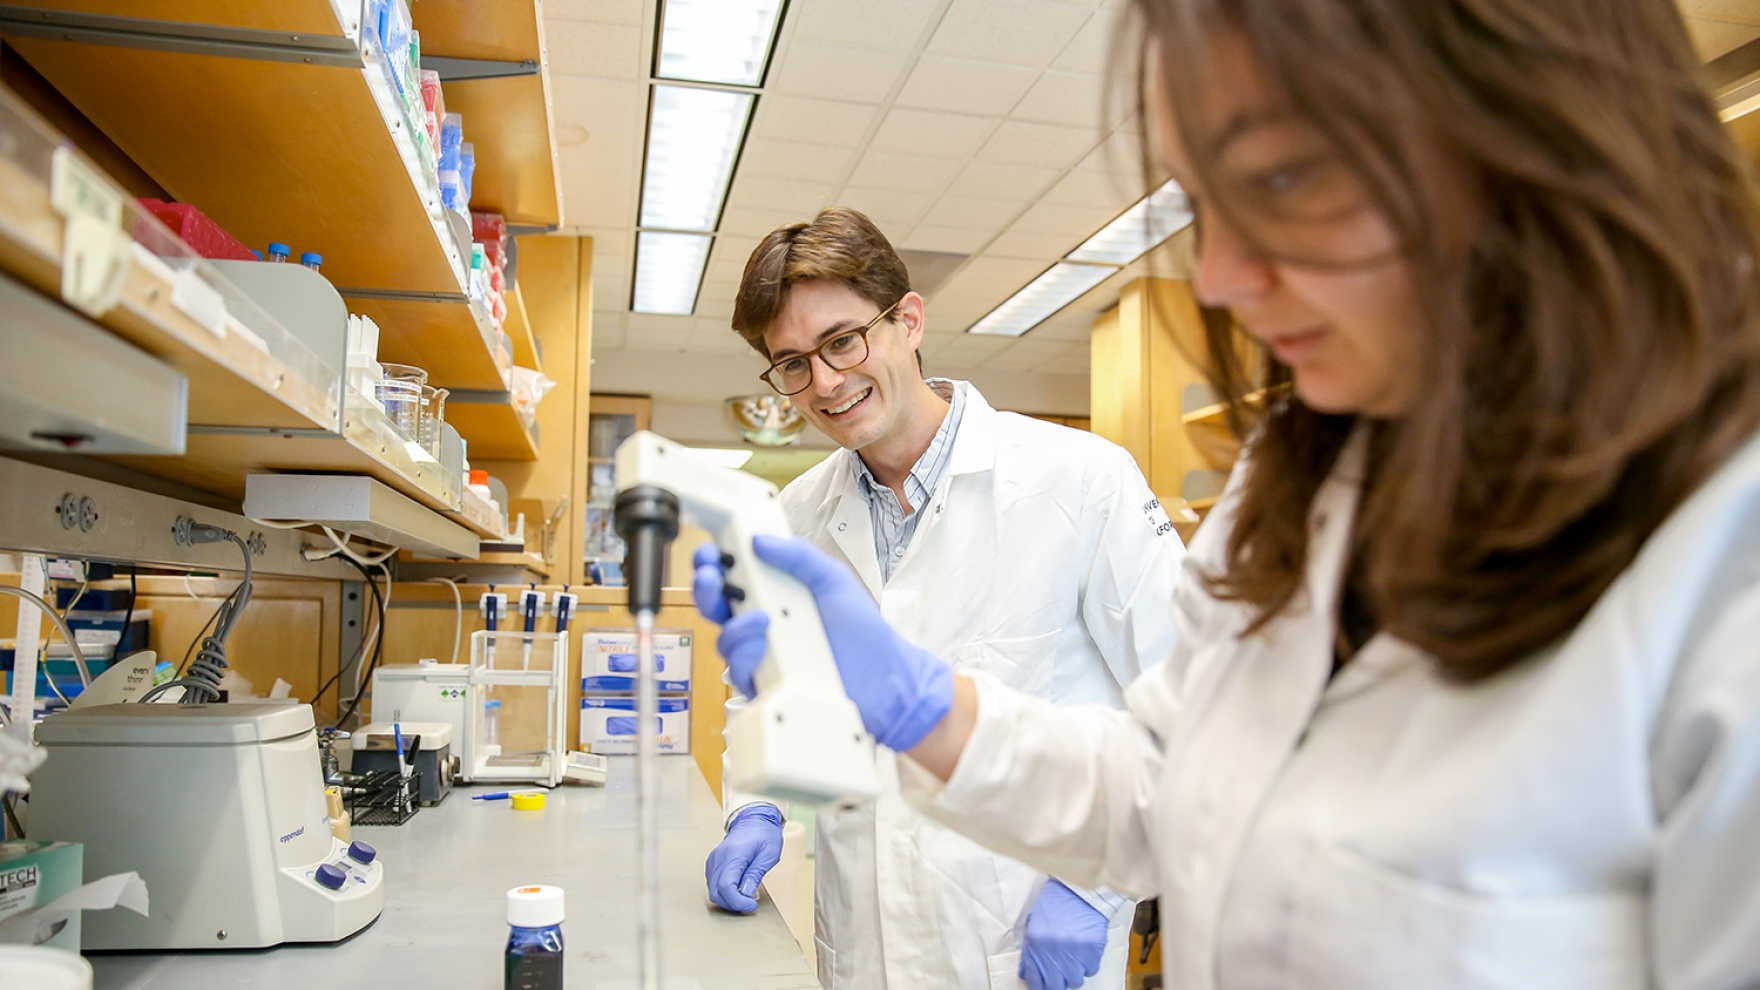 Matthew Spitzer works in his lab with Iliana Tenvvoren